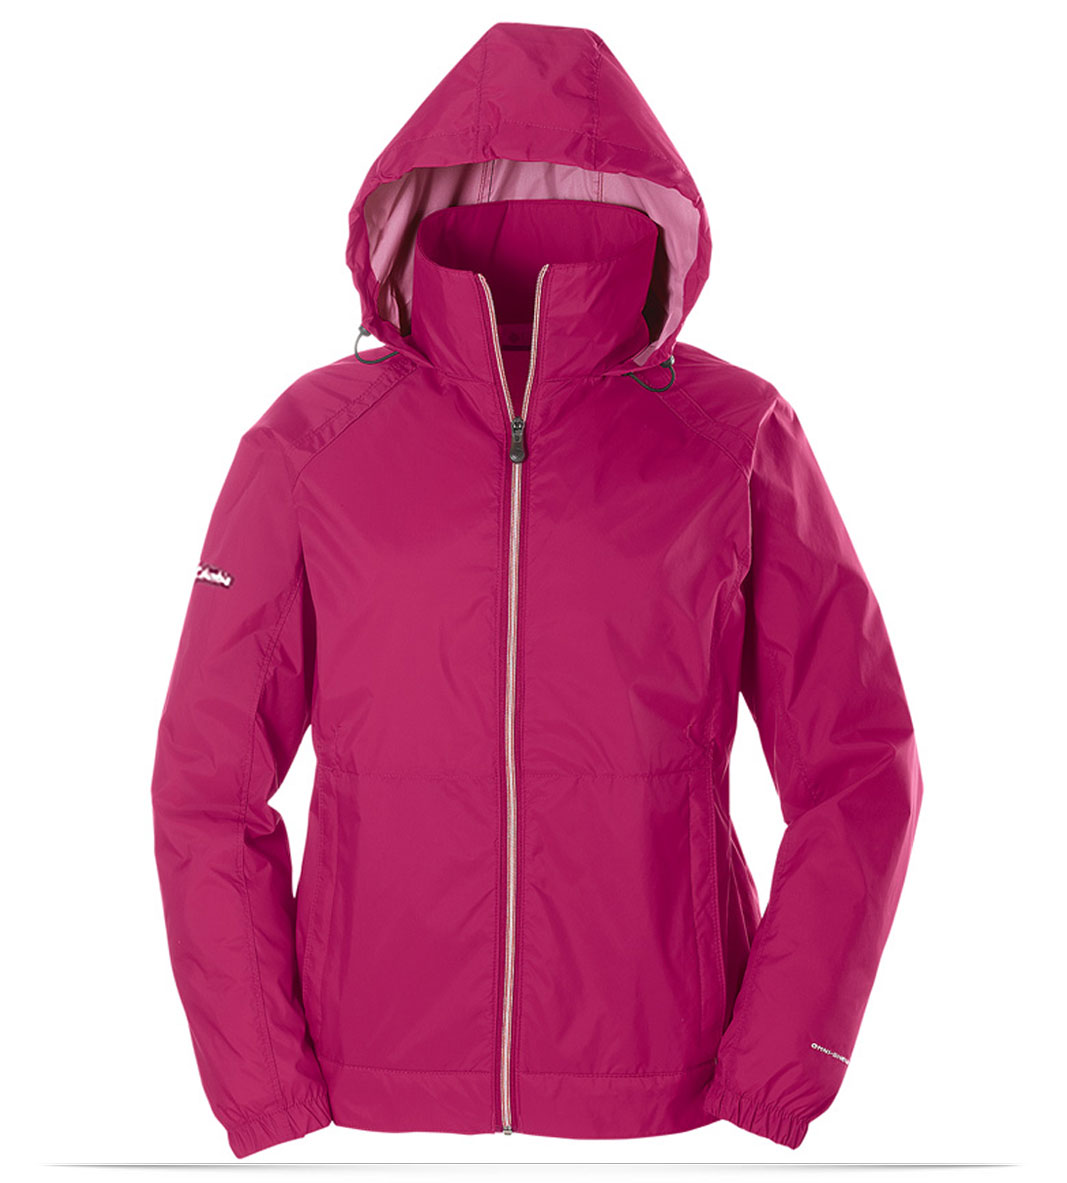 Embroidered Columbia Ladies Classic Jacket